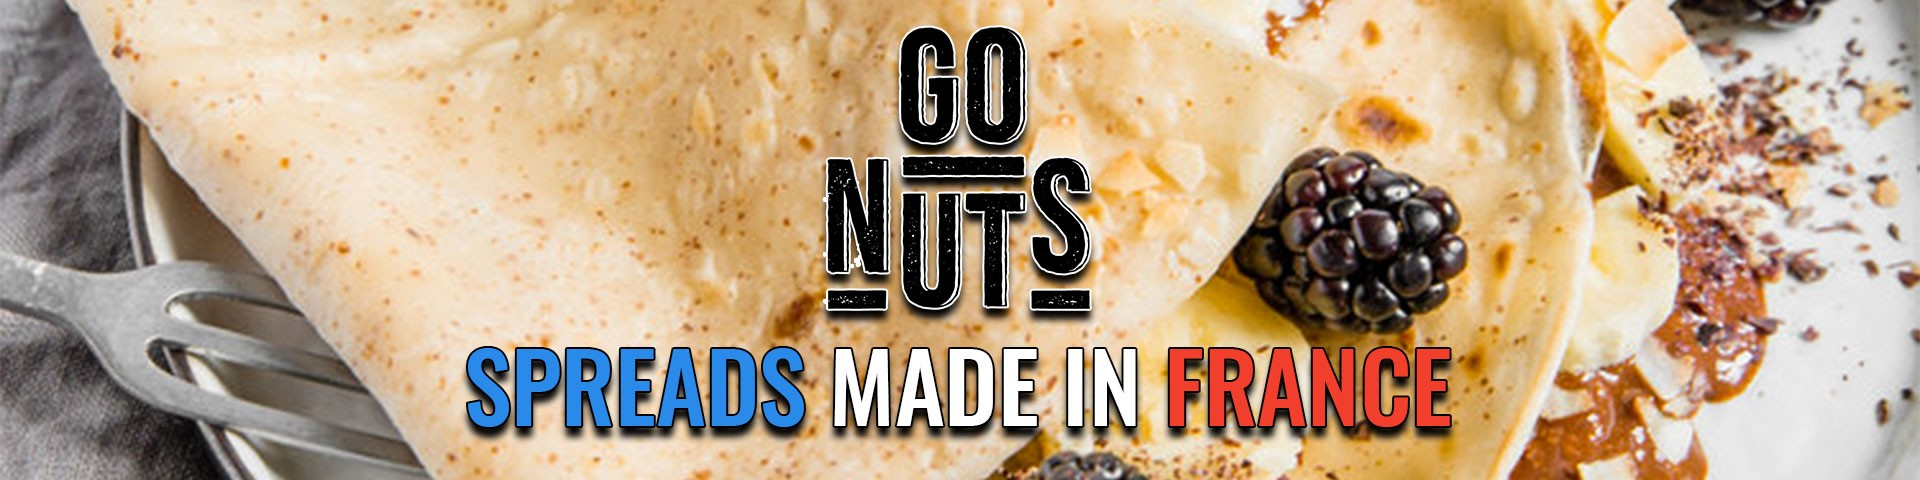 Go Nuts, French spreads